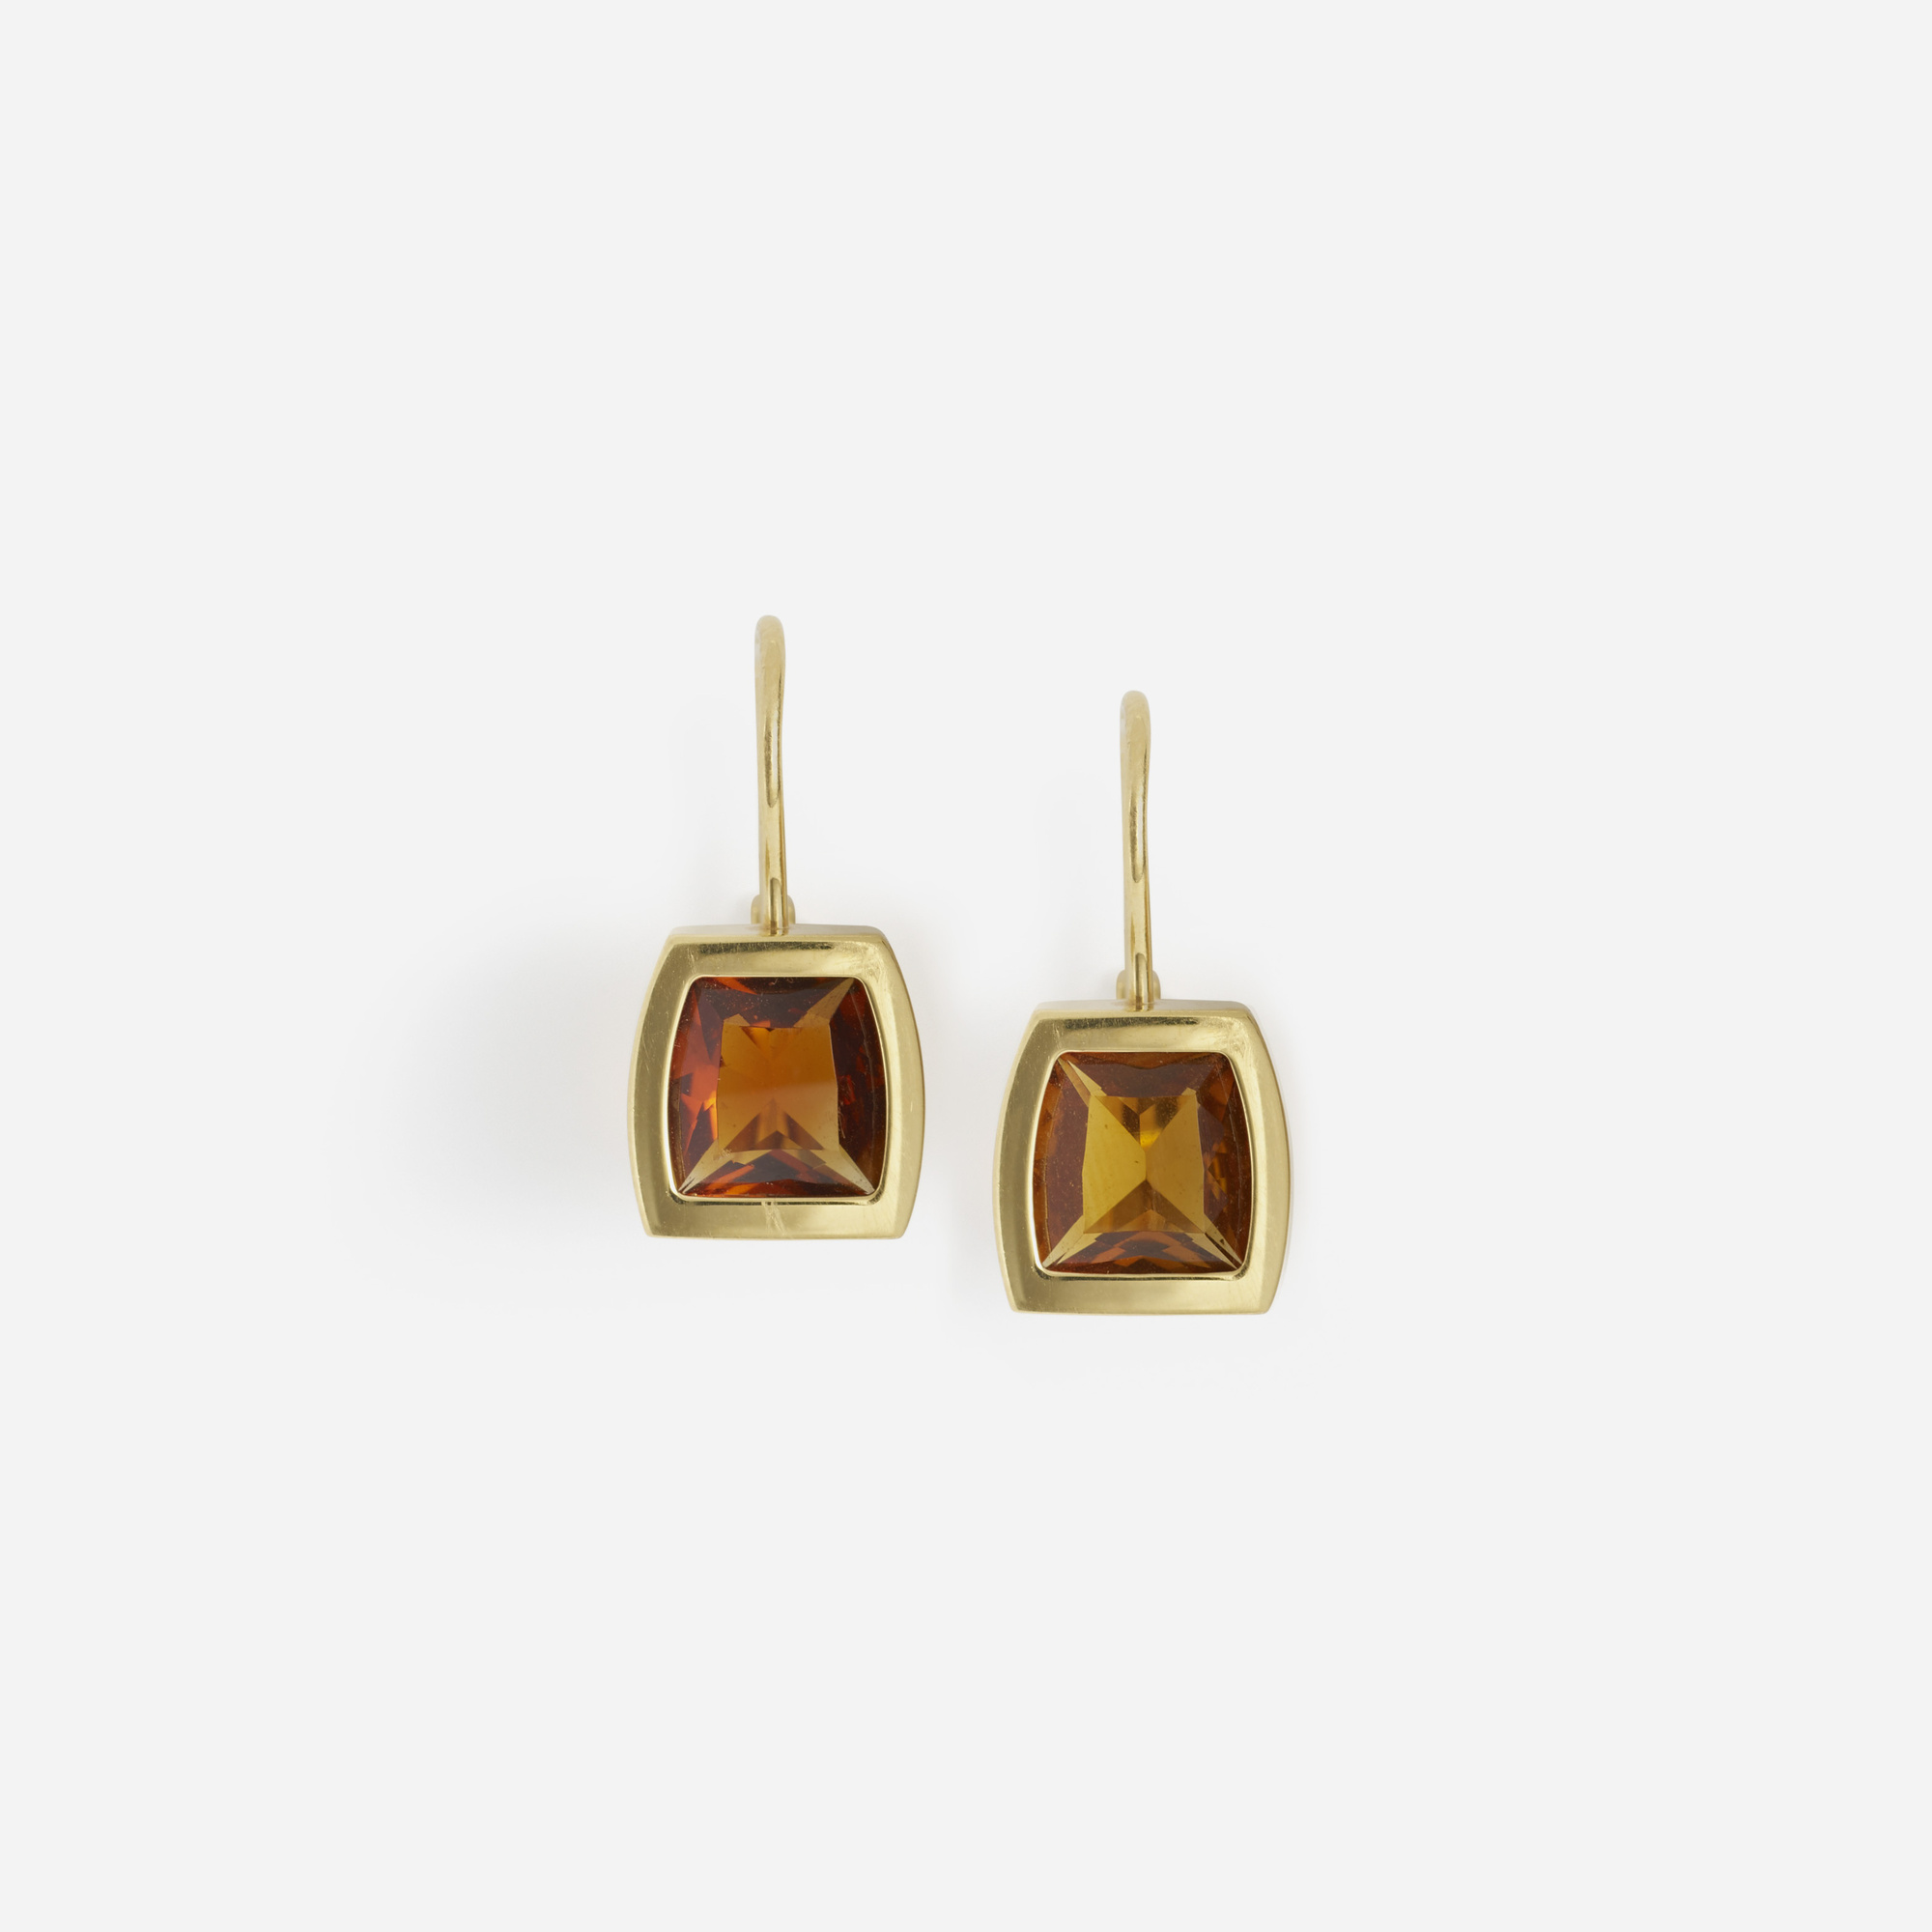 269: Cartier / A pair of gold and citrine earrings (1 of 2)